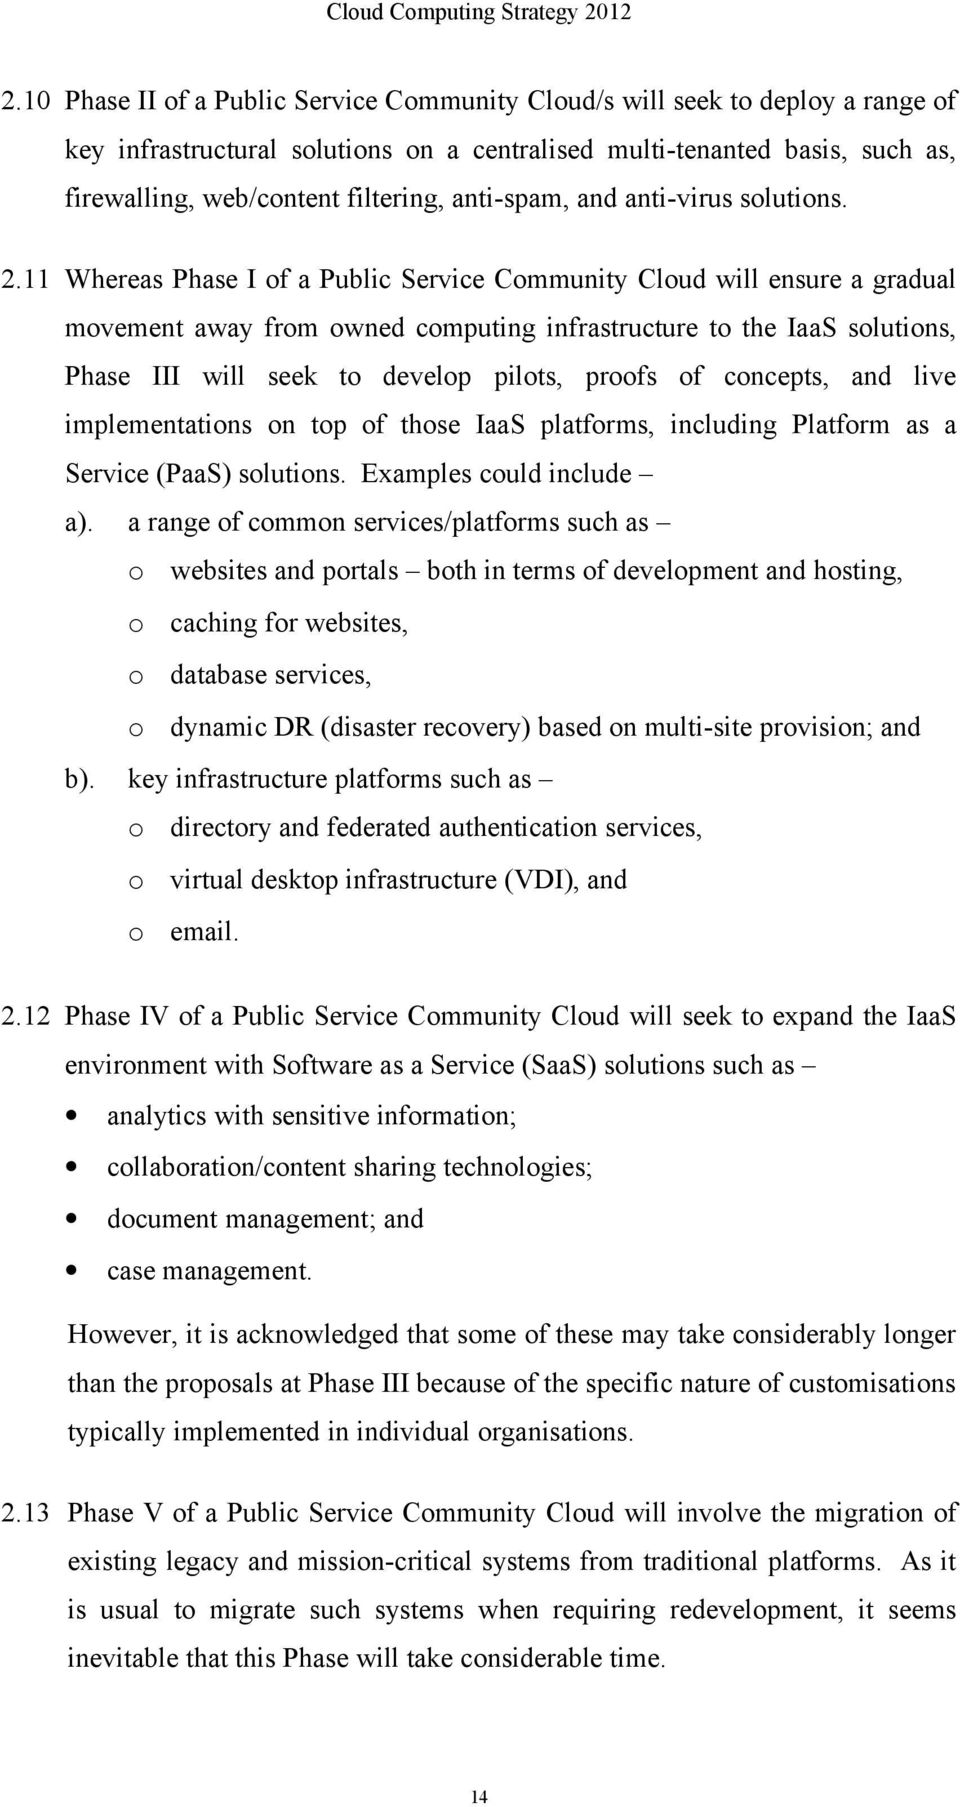 11 Whereas Phase I of a Public Service Community Cloud will ensure a gradual movement away from owned computing infrastructure to the IaaS solutions, Phase III will seek to develop pilots, proofs of